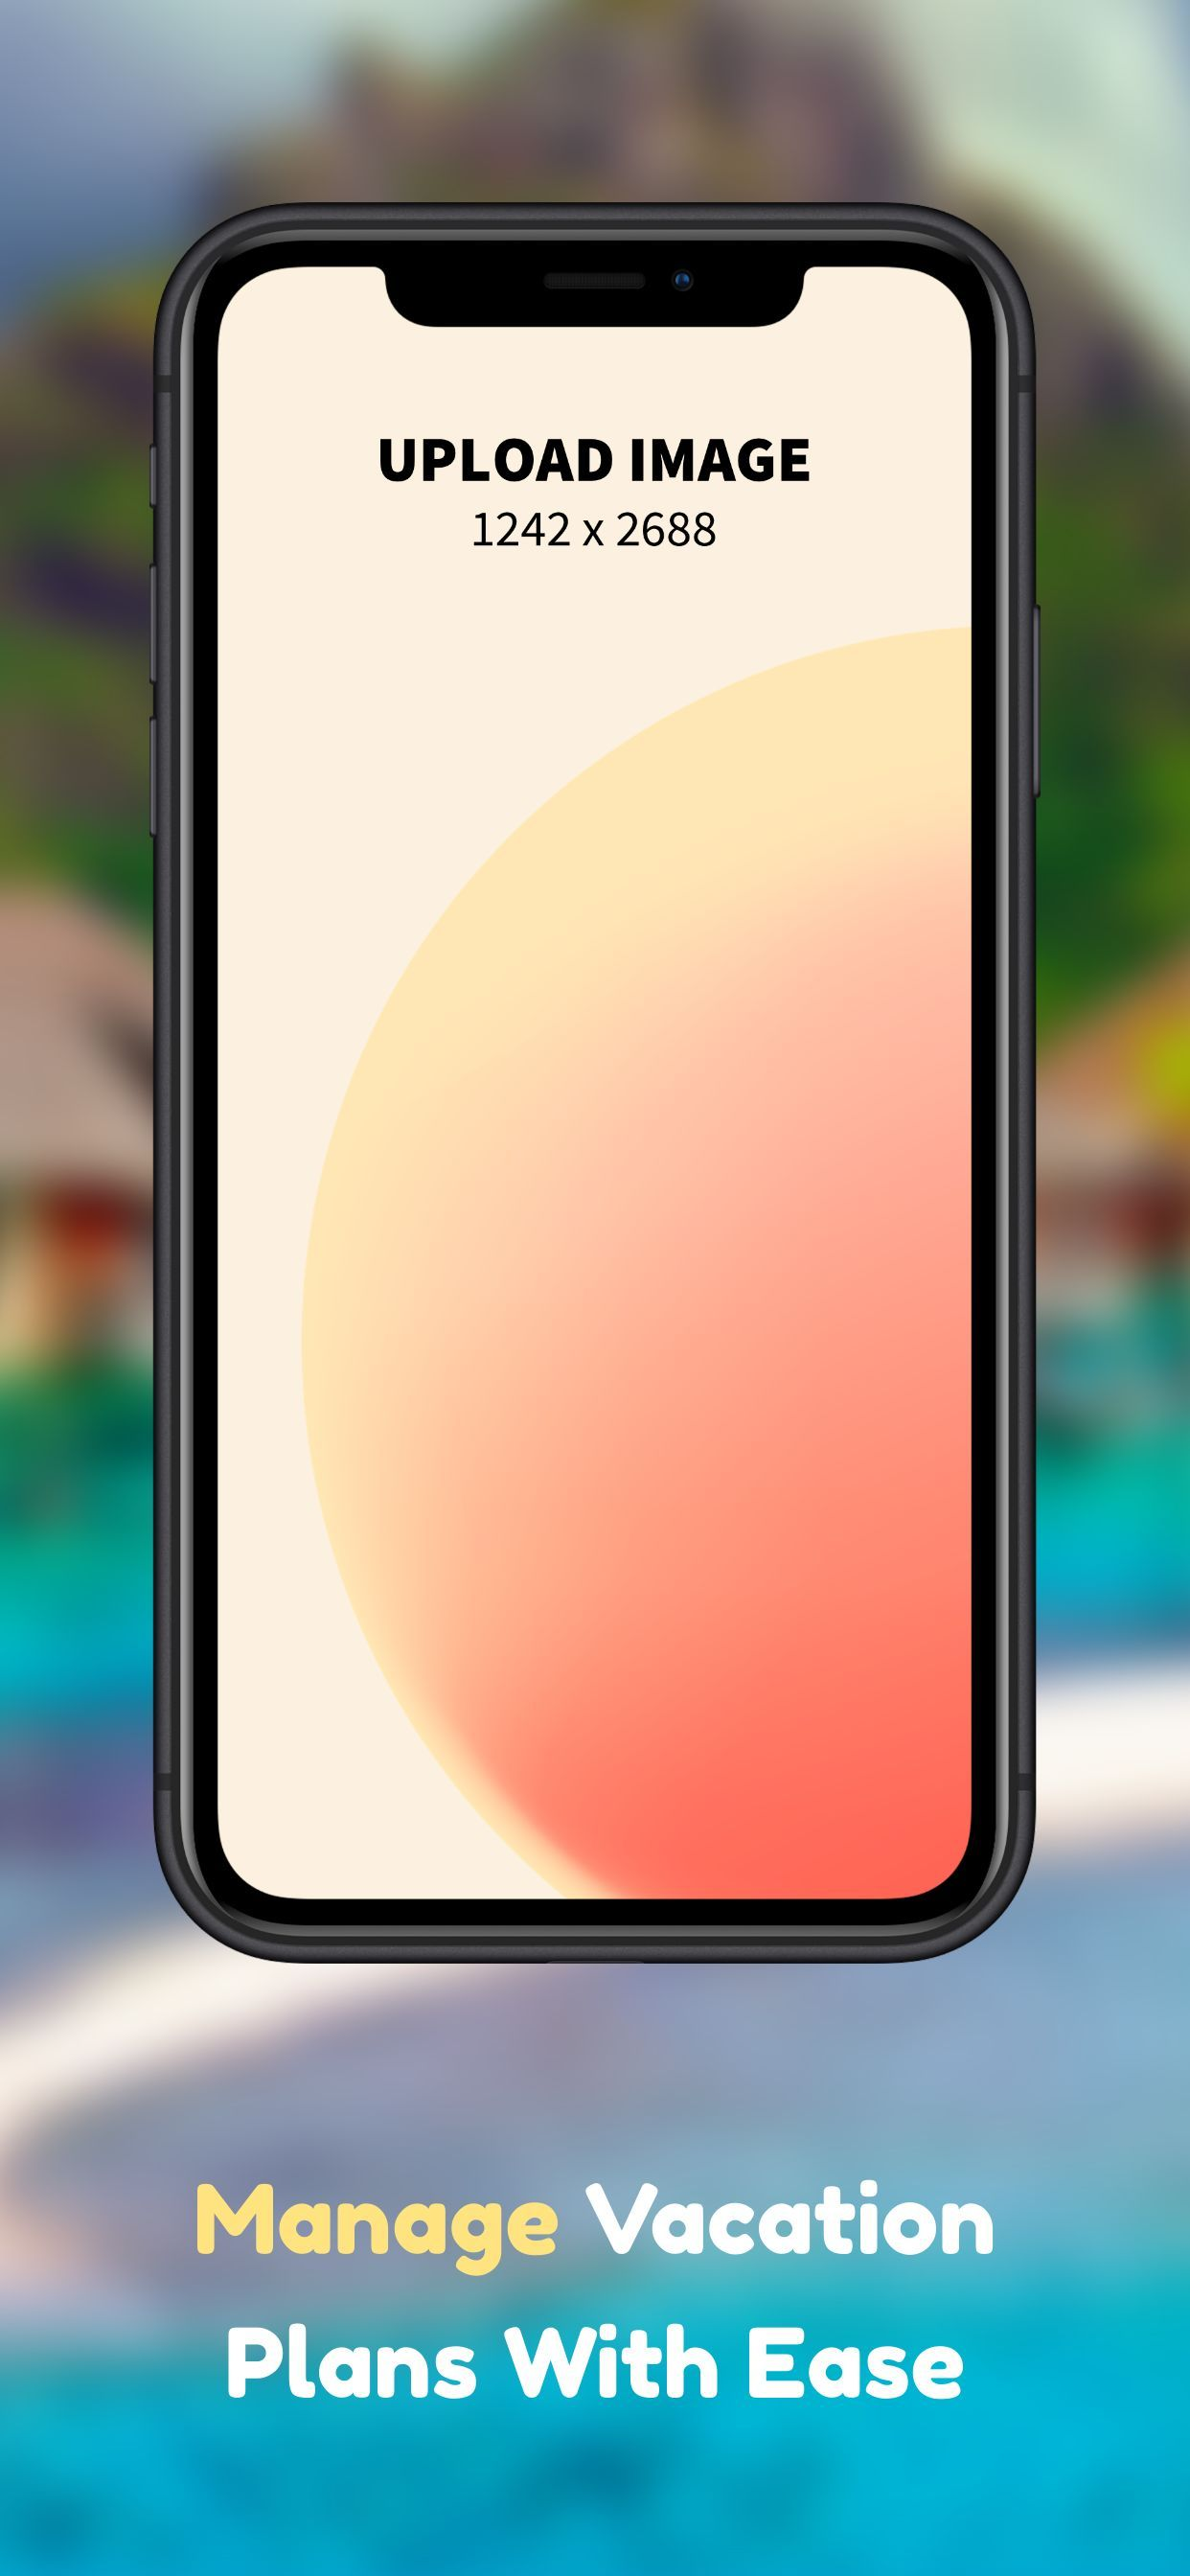 iPhone XS Max Screenshot 58 template. Quickly edit fonts, text, colors, and more for free.